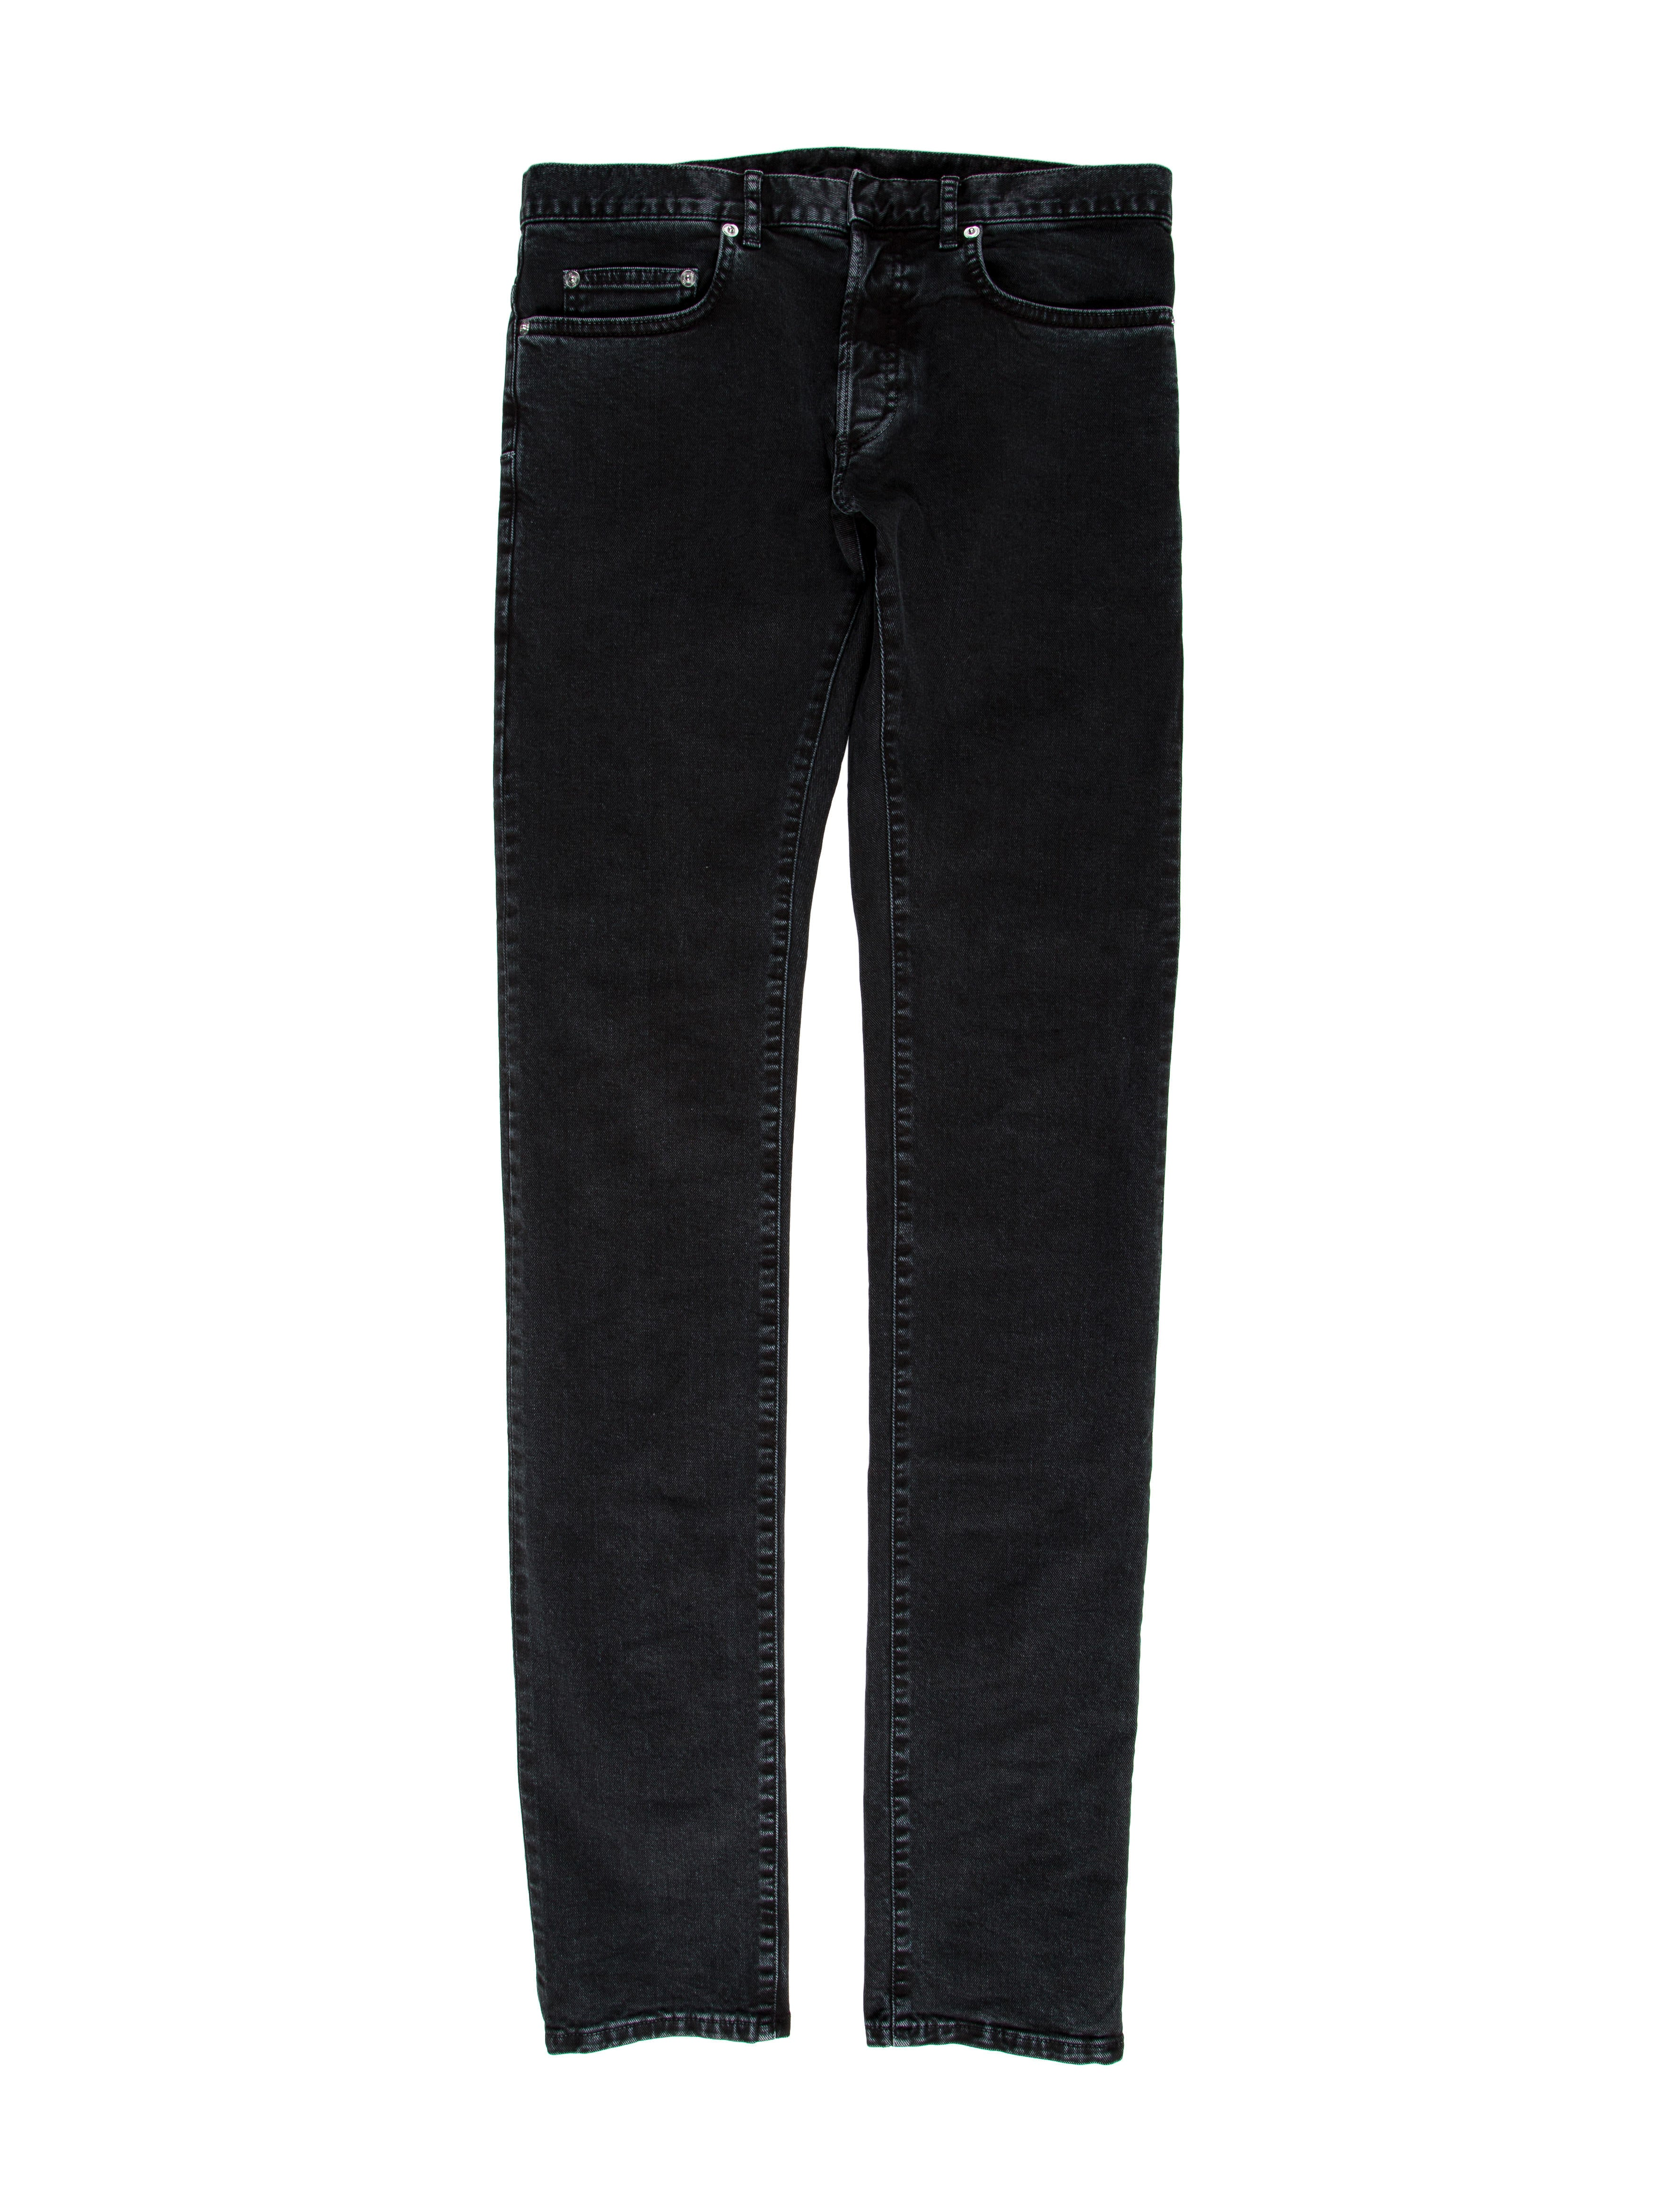 dior homme five pocket skinny jeans w tags clothing hmm22885 the realreal. Black Bedroom Furniture Sets. Home Design Ideas